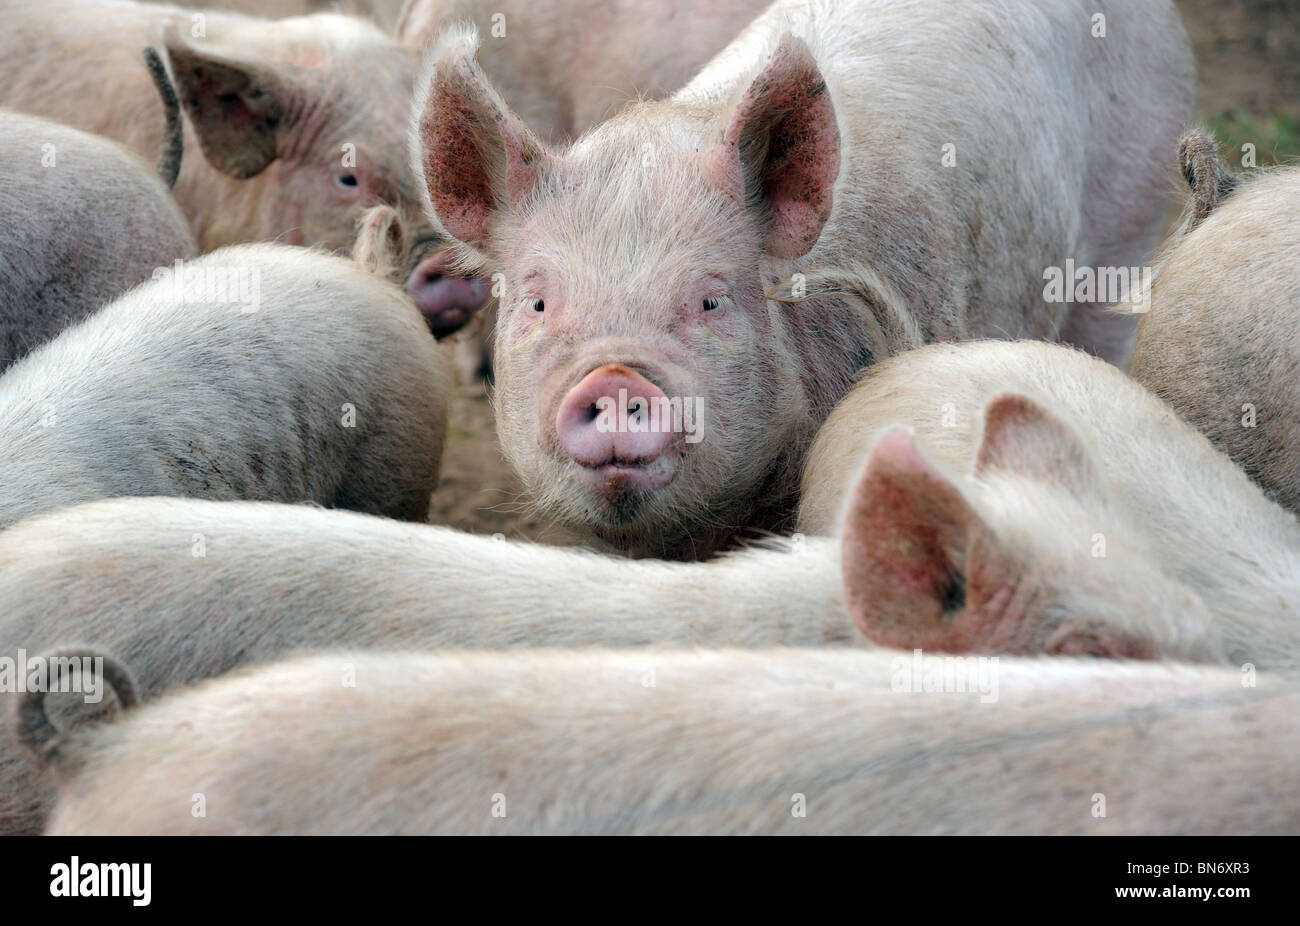 YOUNG PIGS AND PIGLETS AT A BRITISH FARM RE FARMING INCOMES FOOD PRICES SUPERMARKETS ANIMAL WELFARE PRODUCTION COSTS - Stock Image